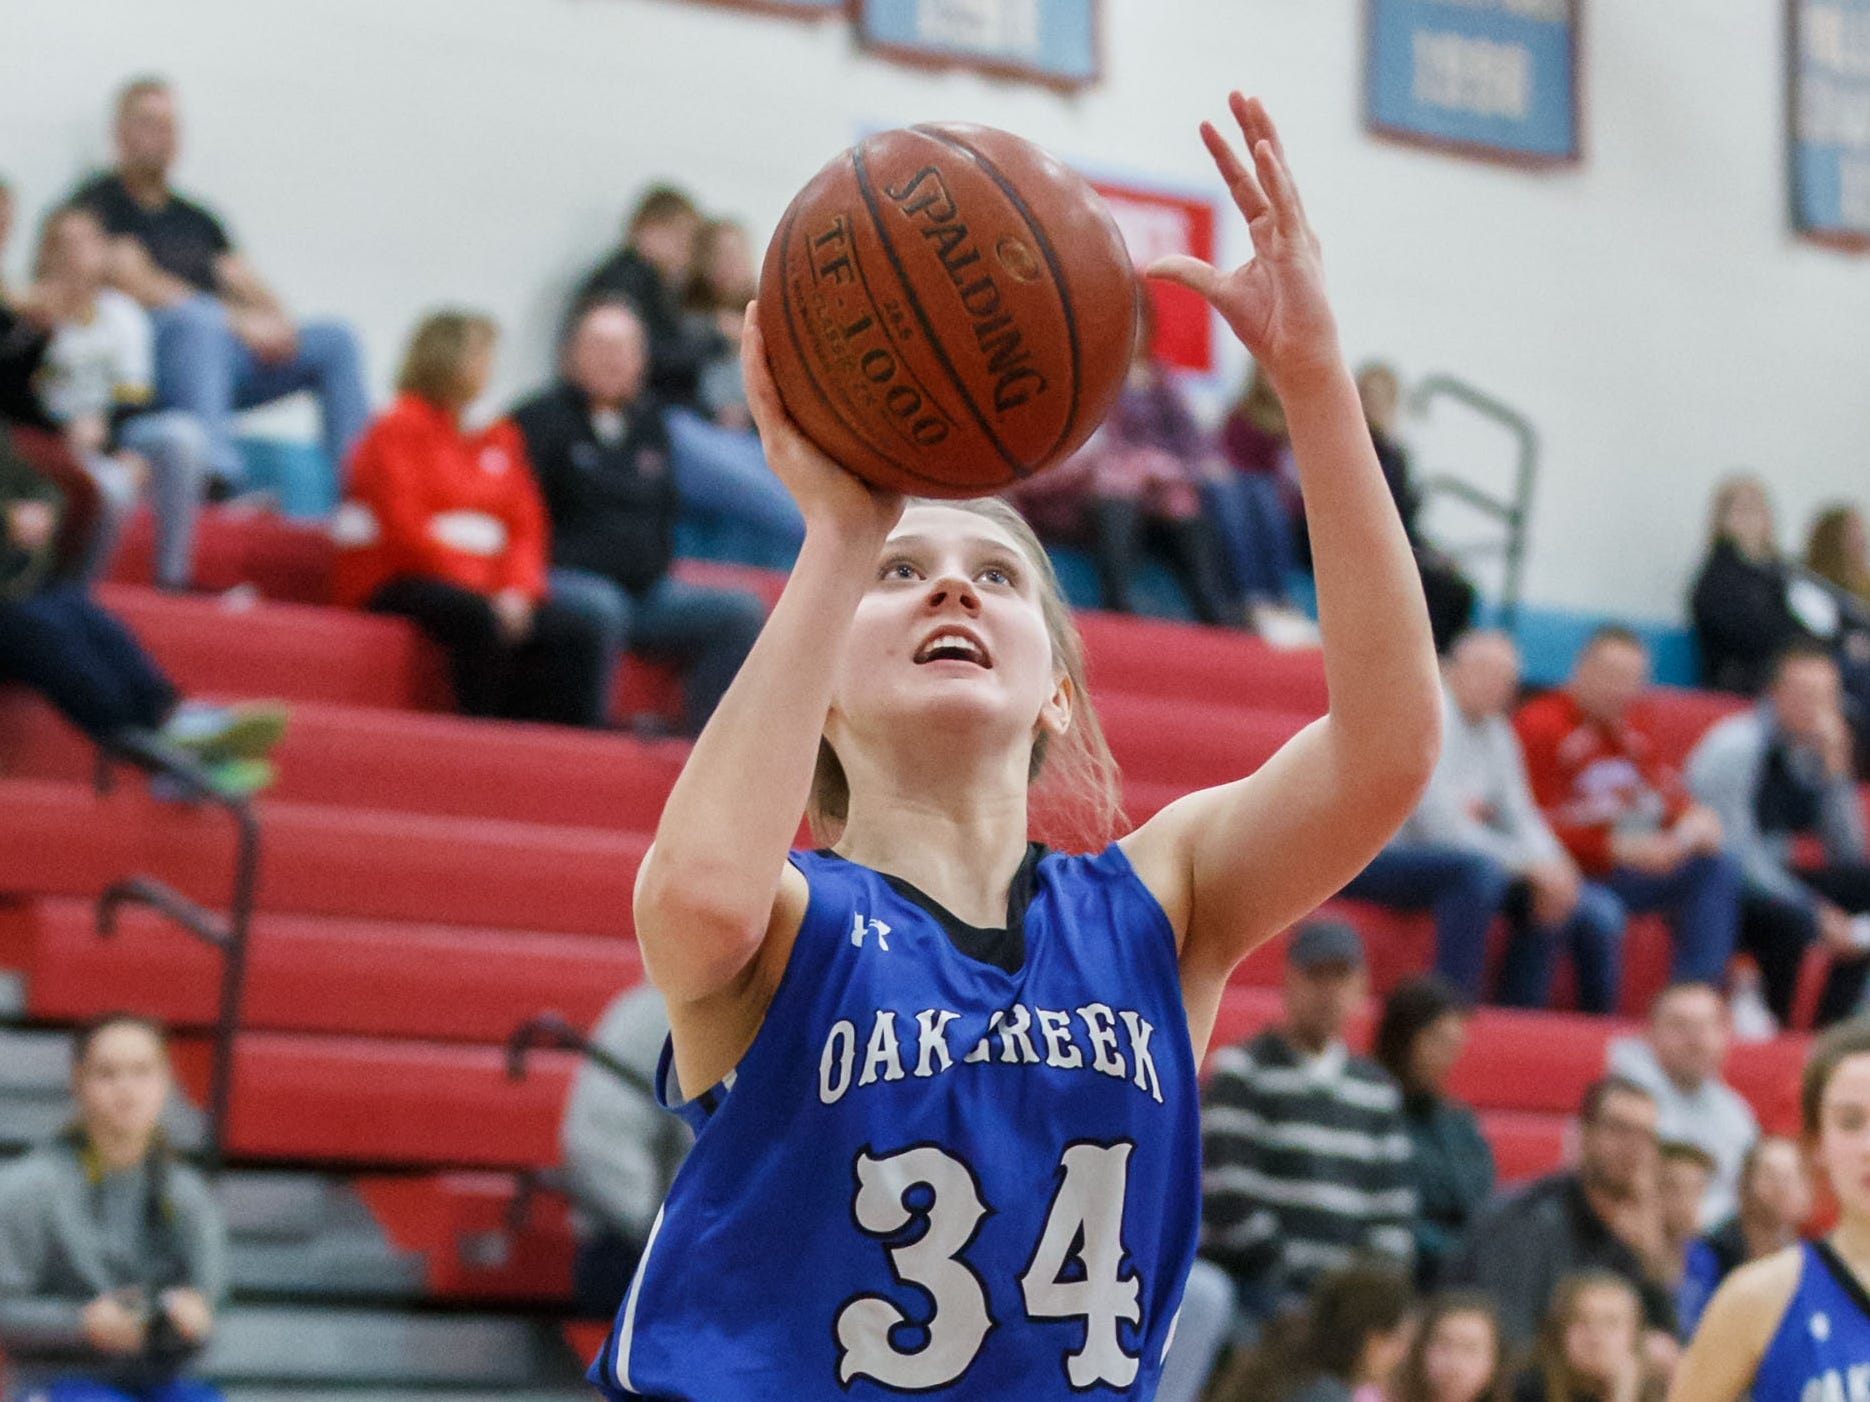 Oak Creek sophomore Jamie Finn (34) elevates for a shot during the game at Arrowhead on Friday, Nov. 16, 2018.